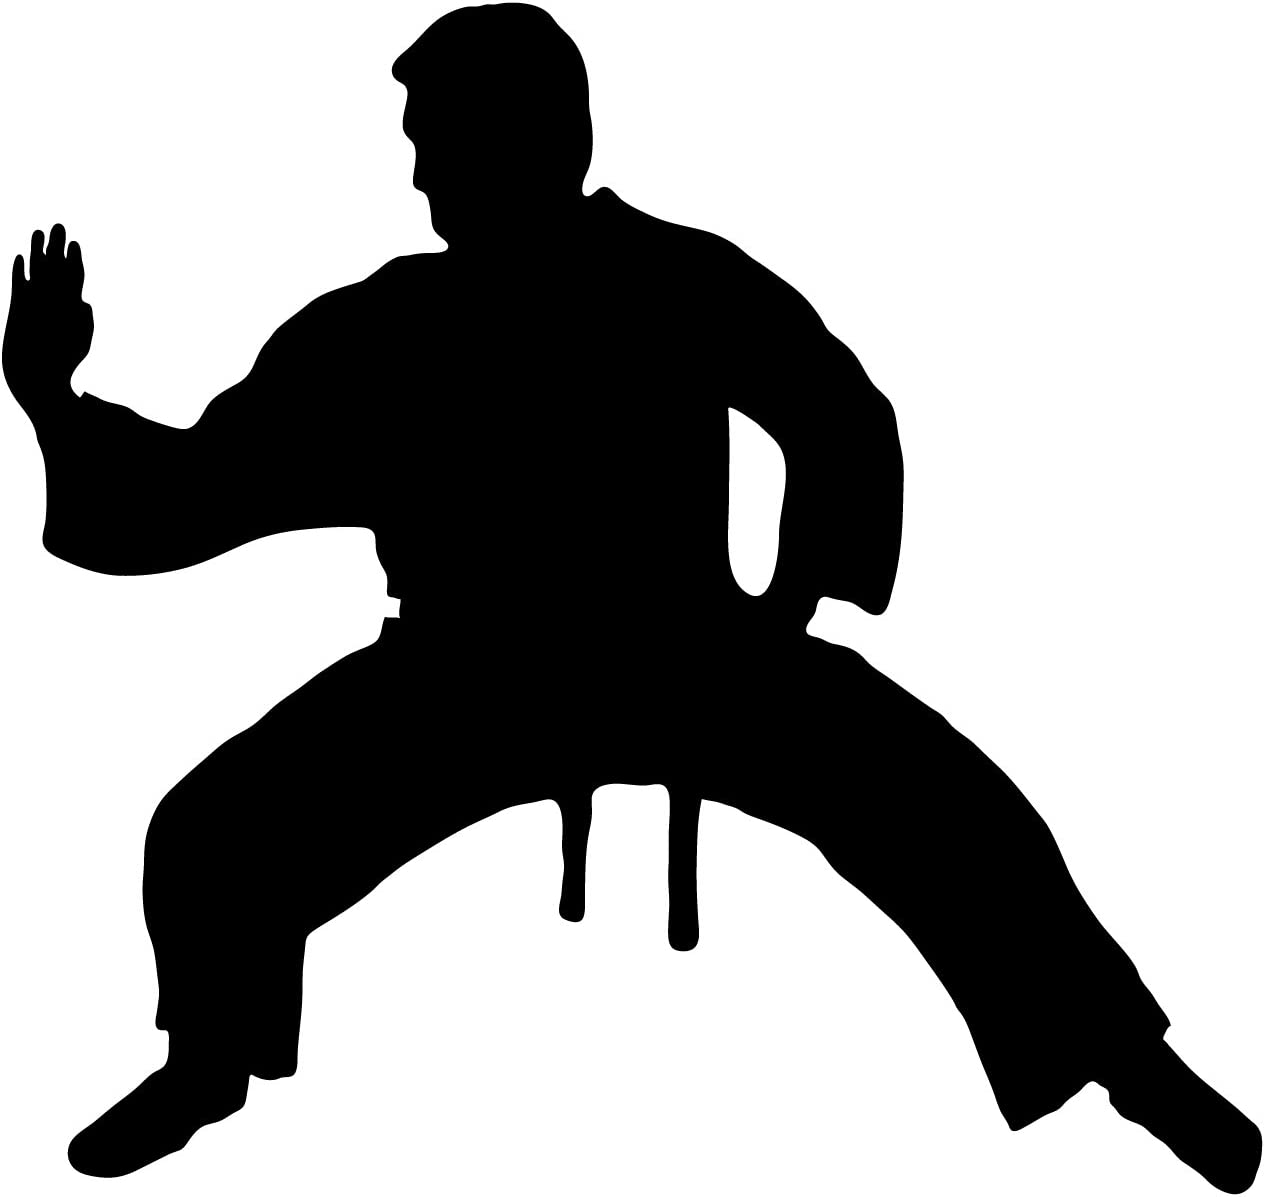 Martial Arts Wall Decal Sticker 16 - Decal Stickers and Mural for Kids Boys Girls Room and Bedroom. Karate Sport Wall Art for Home Decor and Decoration - Martial Art Kung Fu Taekwondo Silhouette Mural